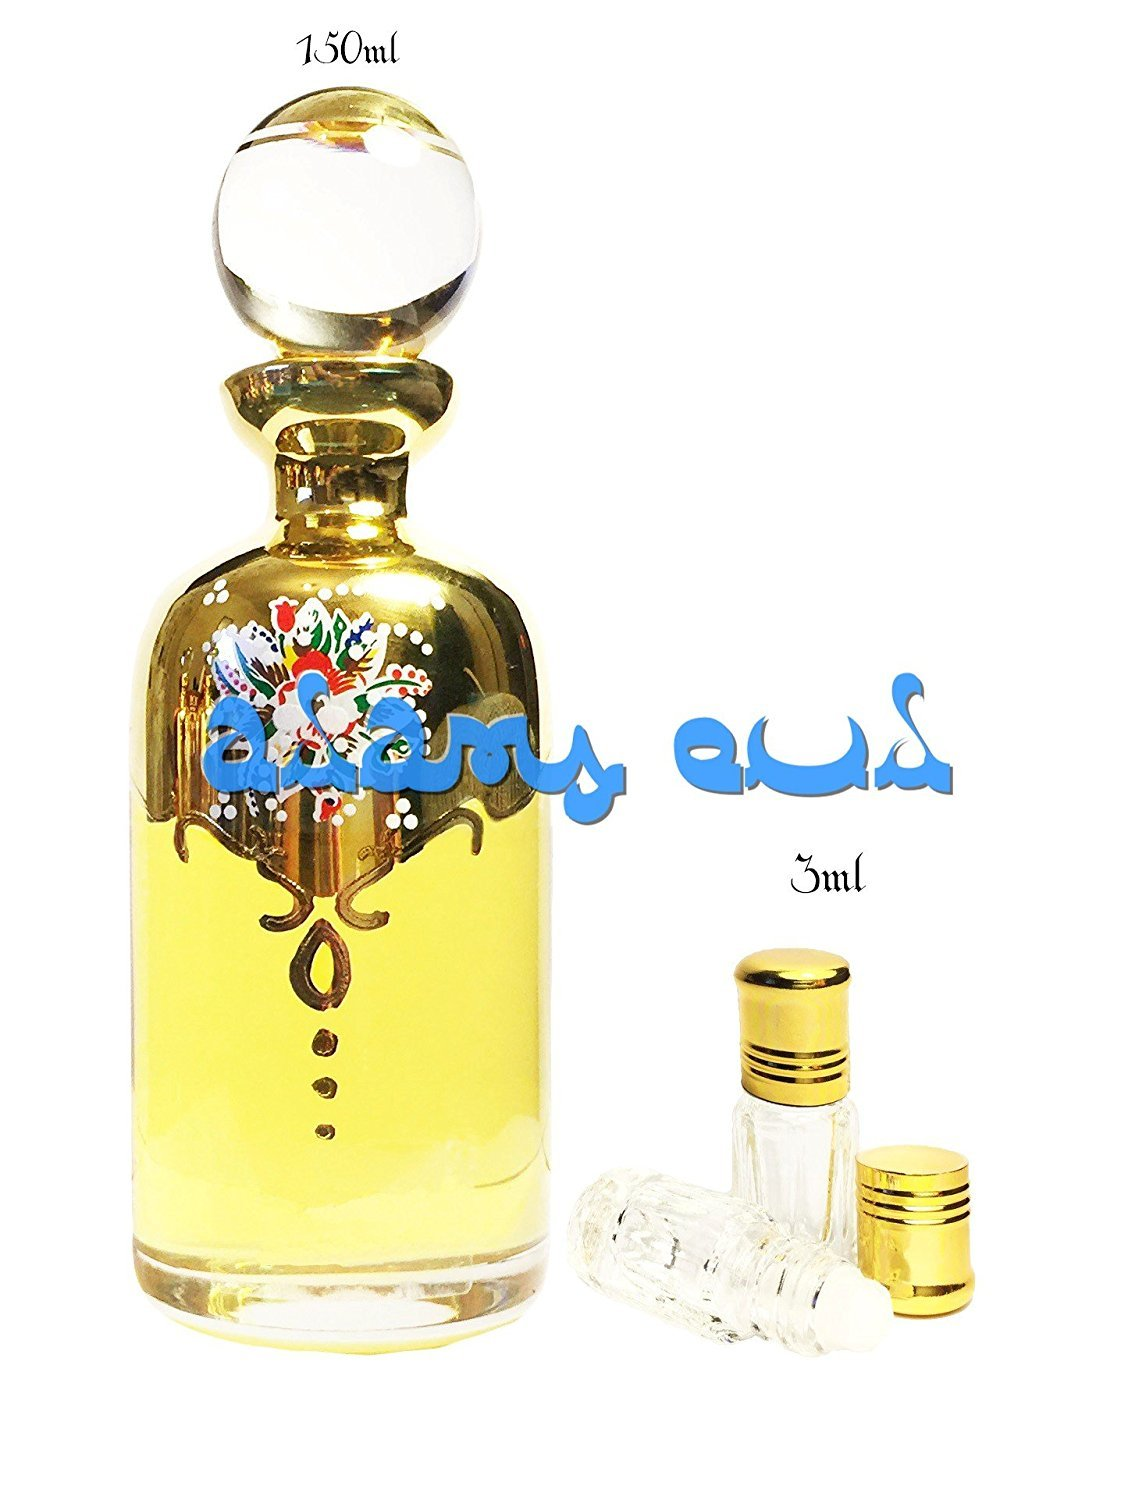 Rose of the Arabs - Oil Based Perfume Attar - Alcohol Free Fragrance (3ml) The Attar Specialists